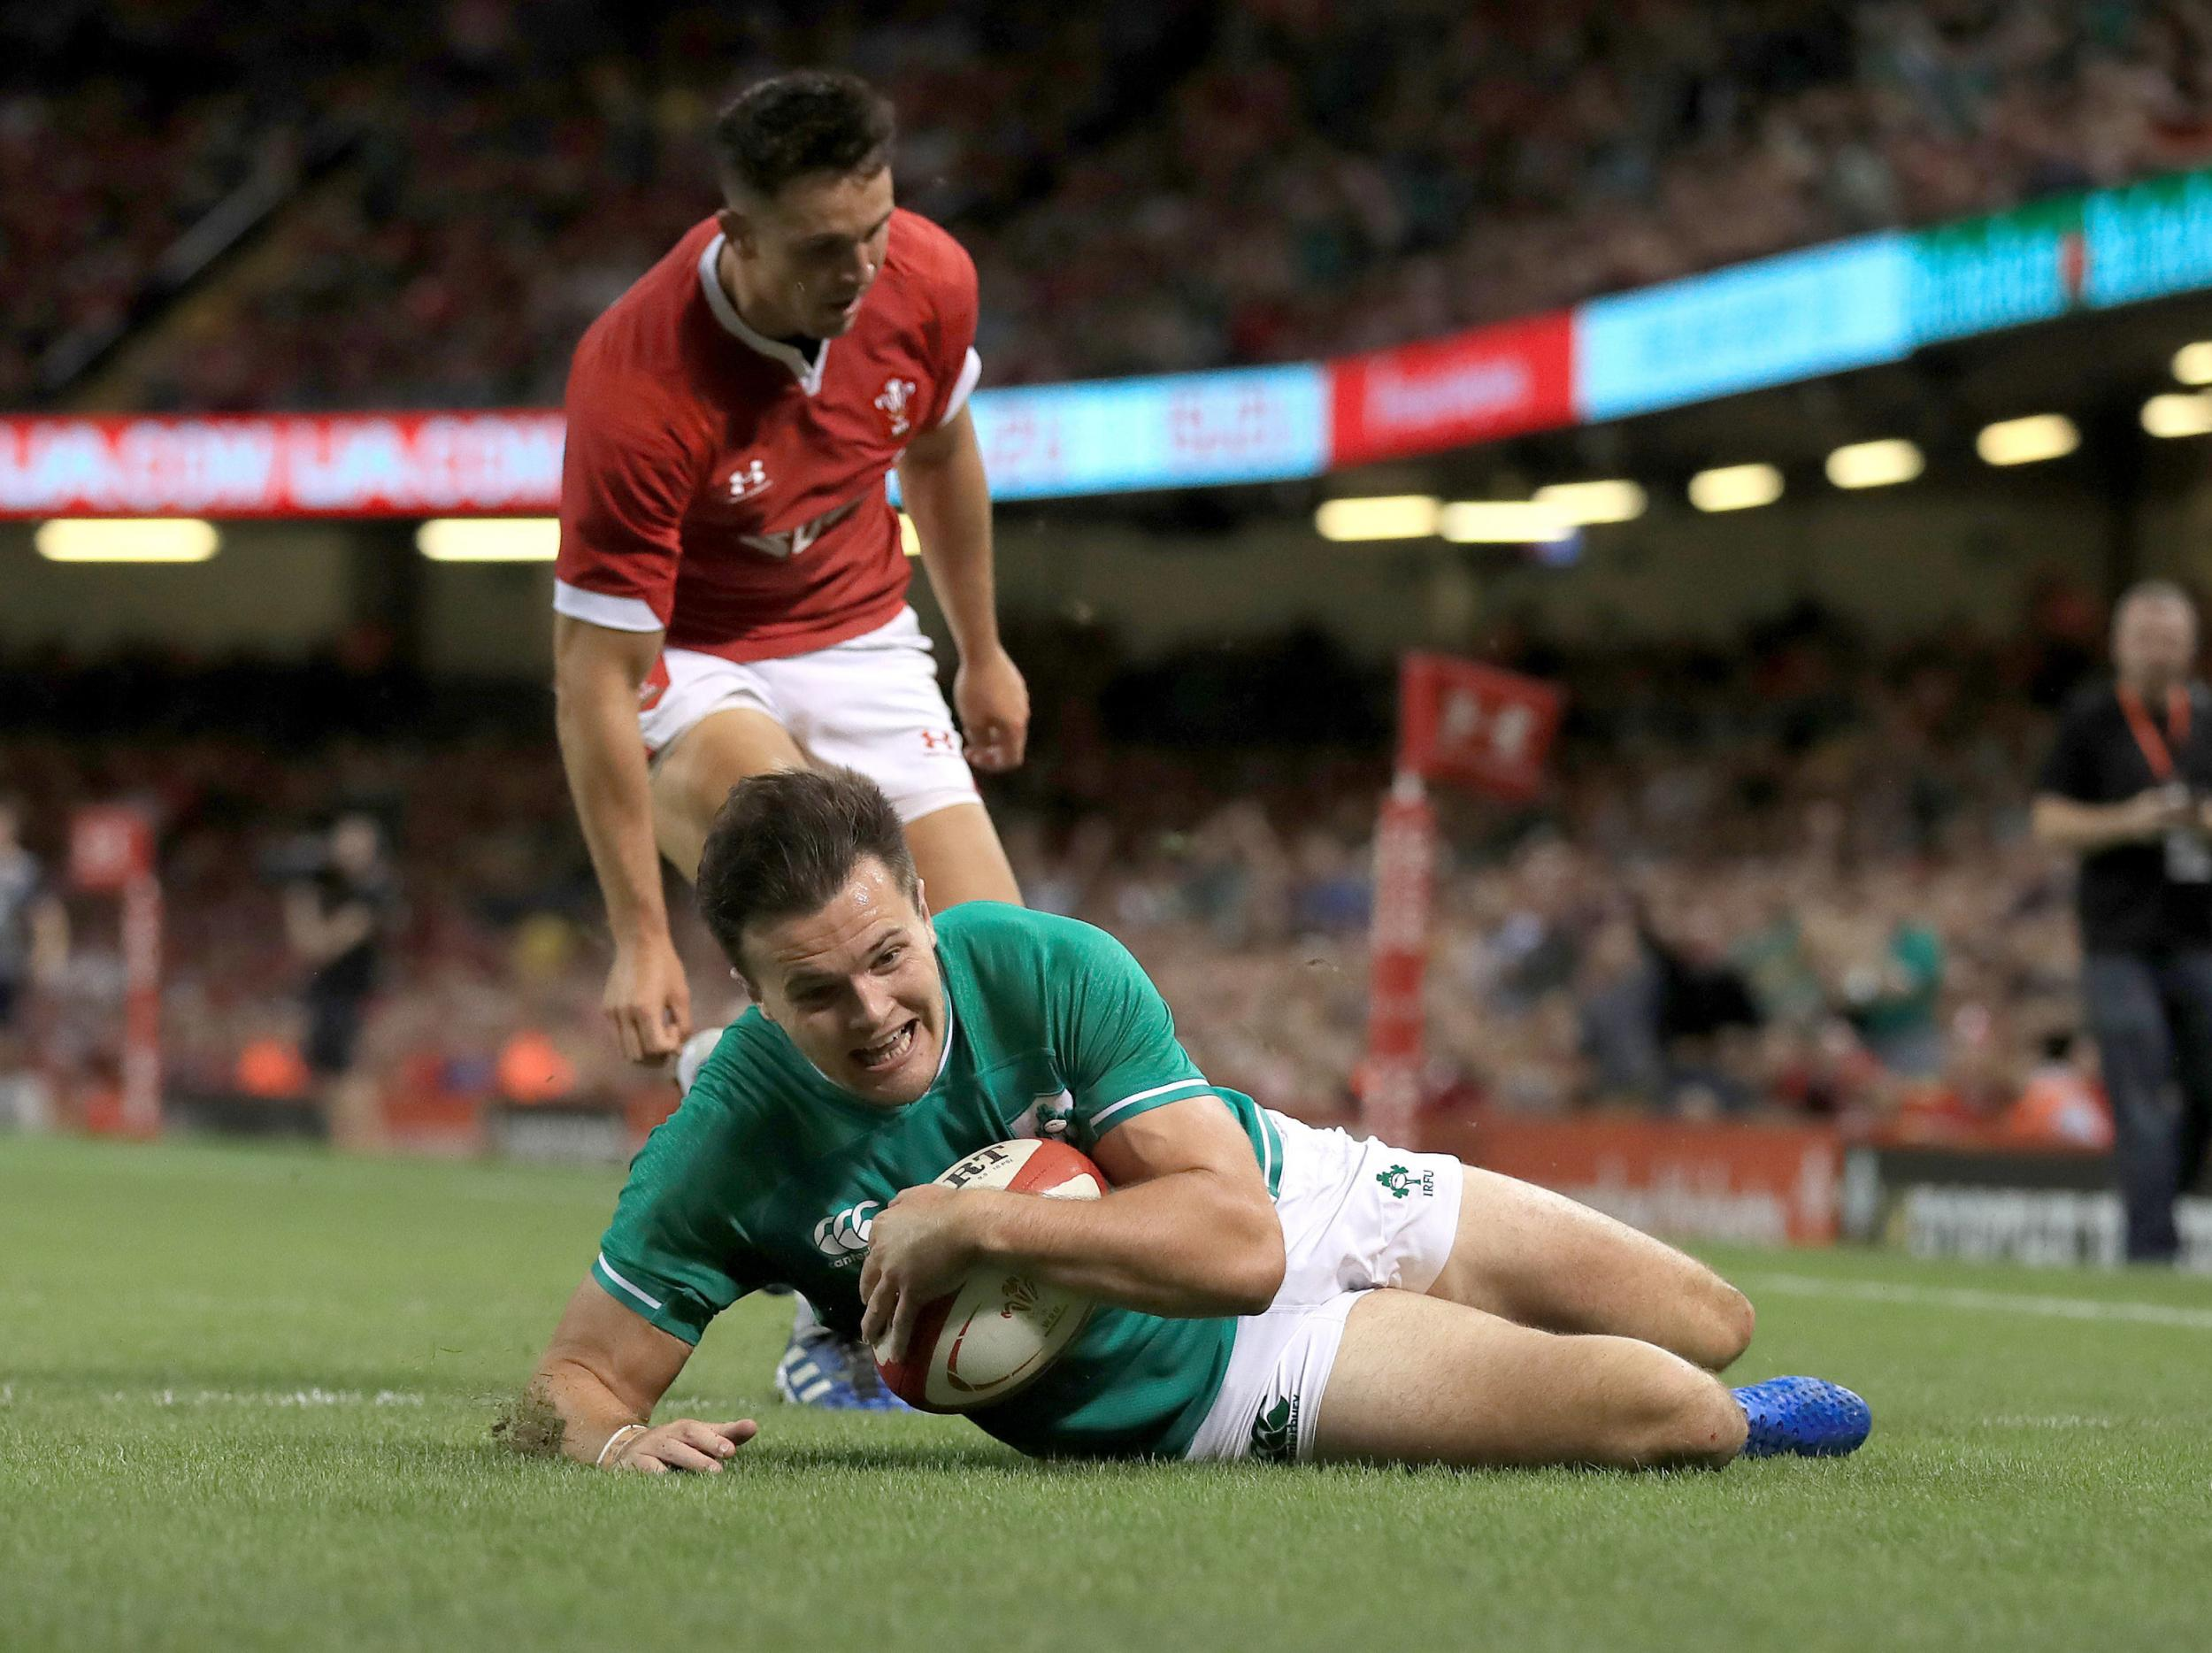 Wales vs Ireland result: Five things we learned from Rugby World Cup warm-up match in Cardiff